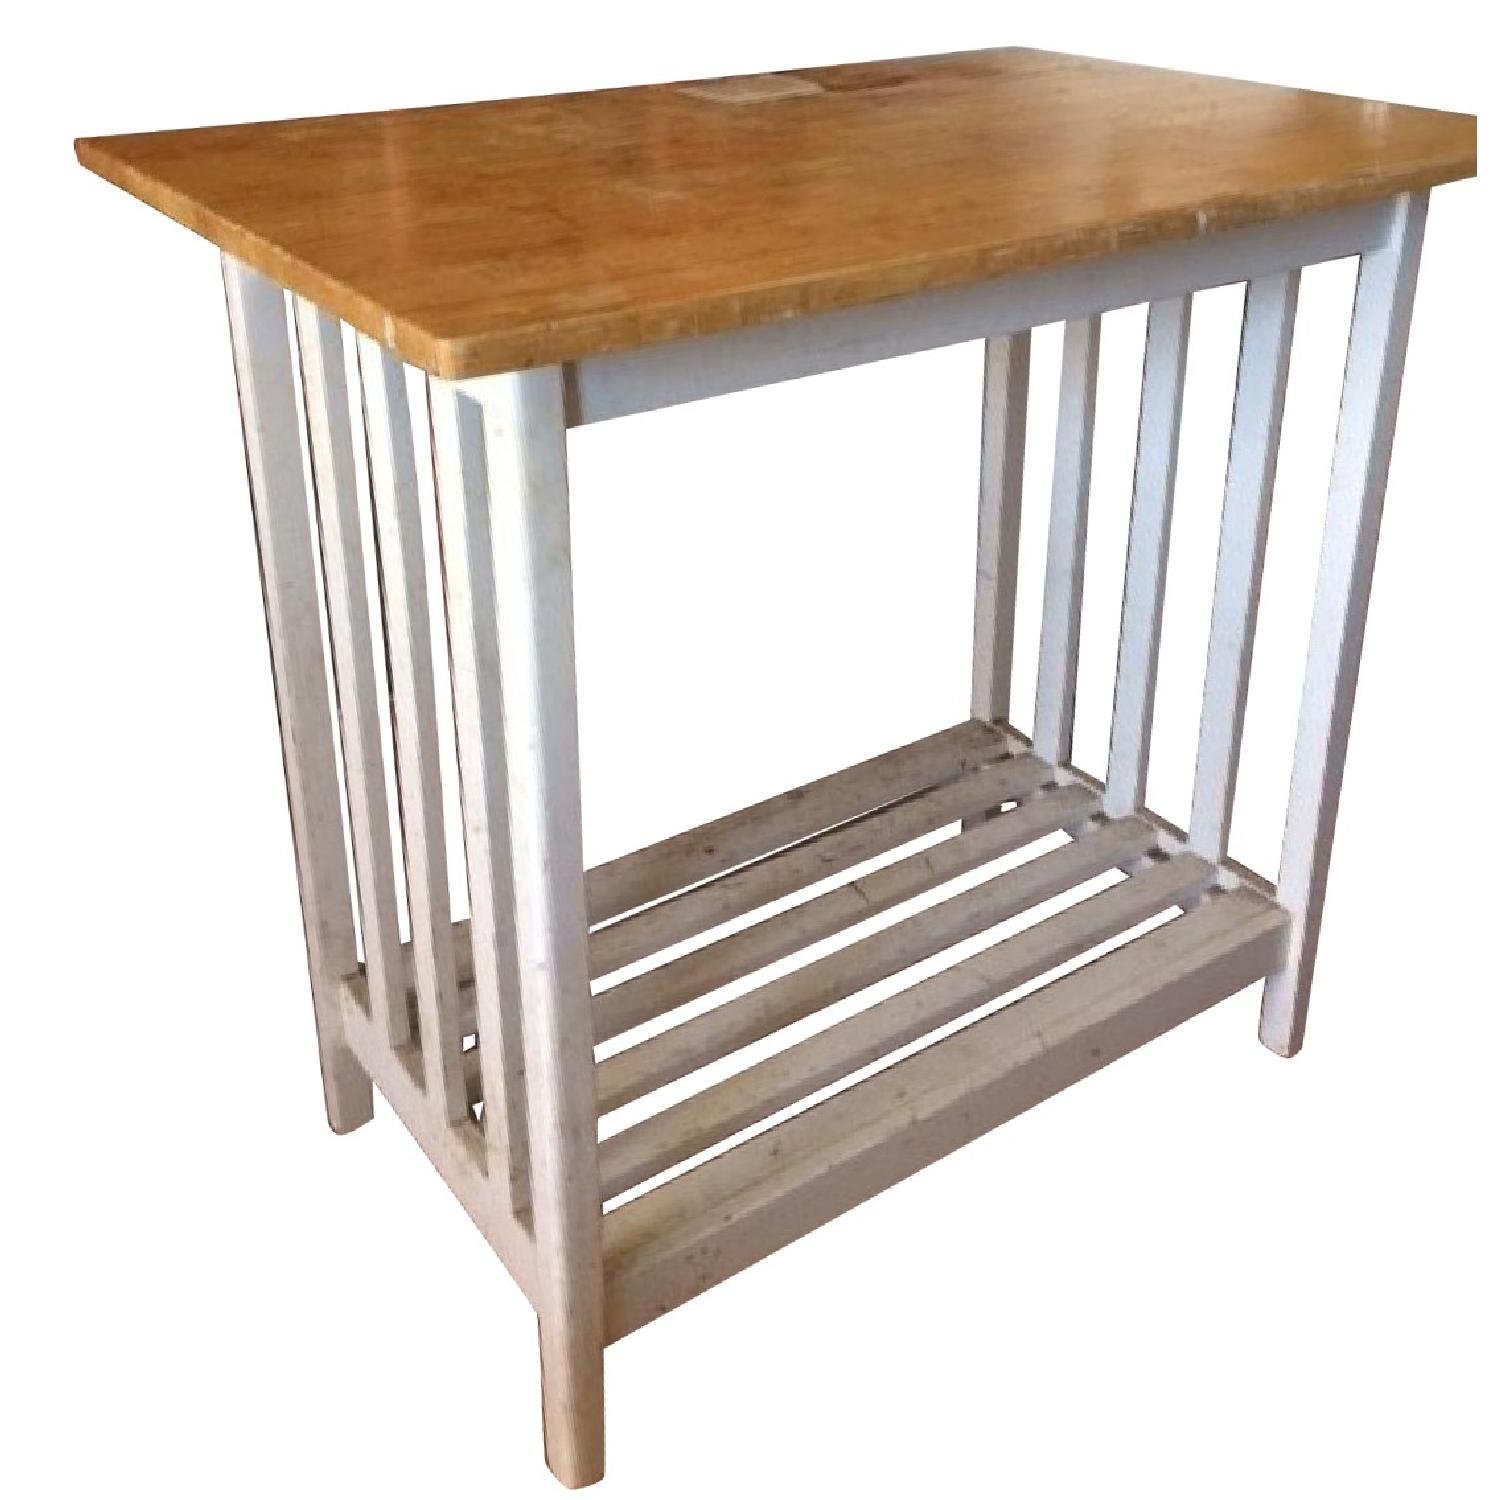 Fullsize Of Country Style Kitchen Island